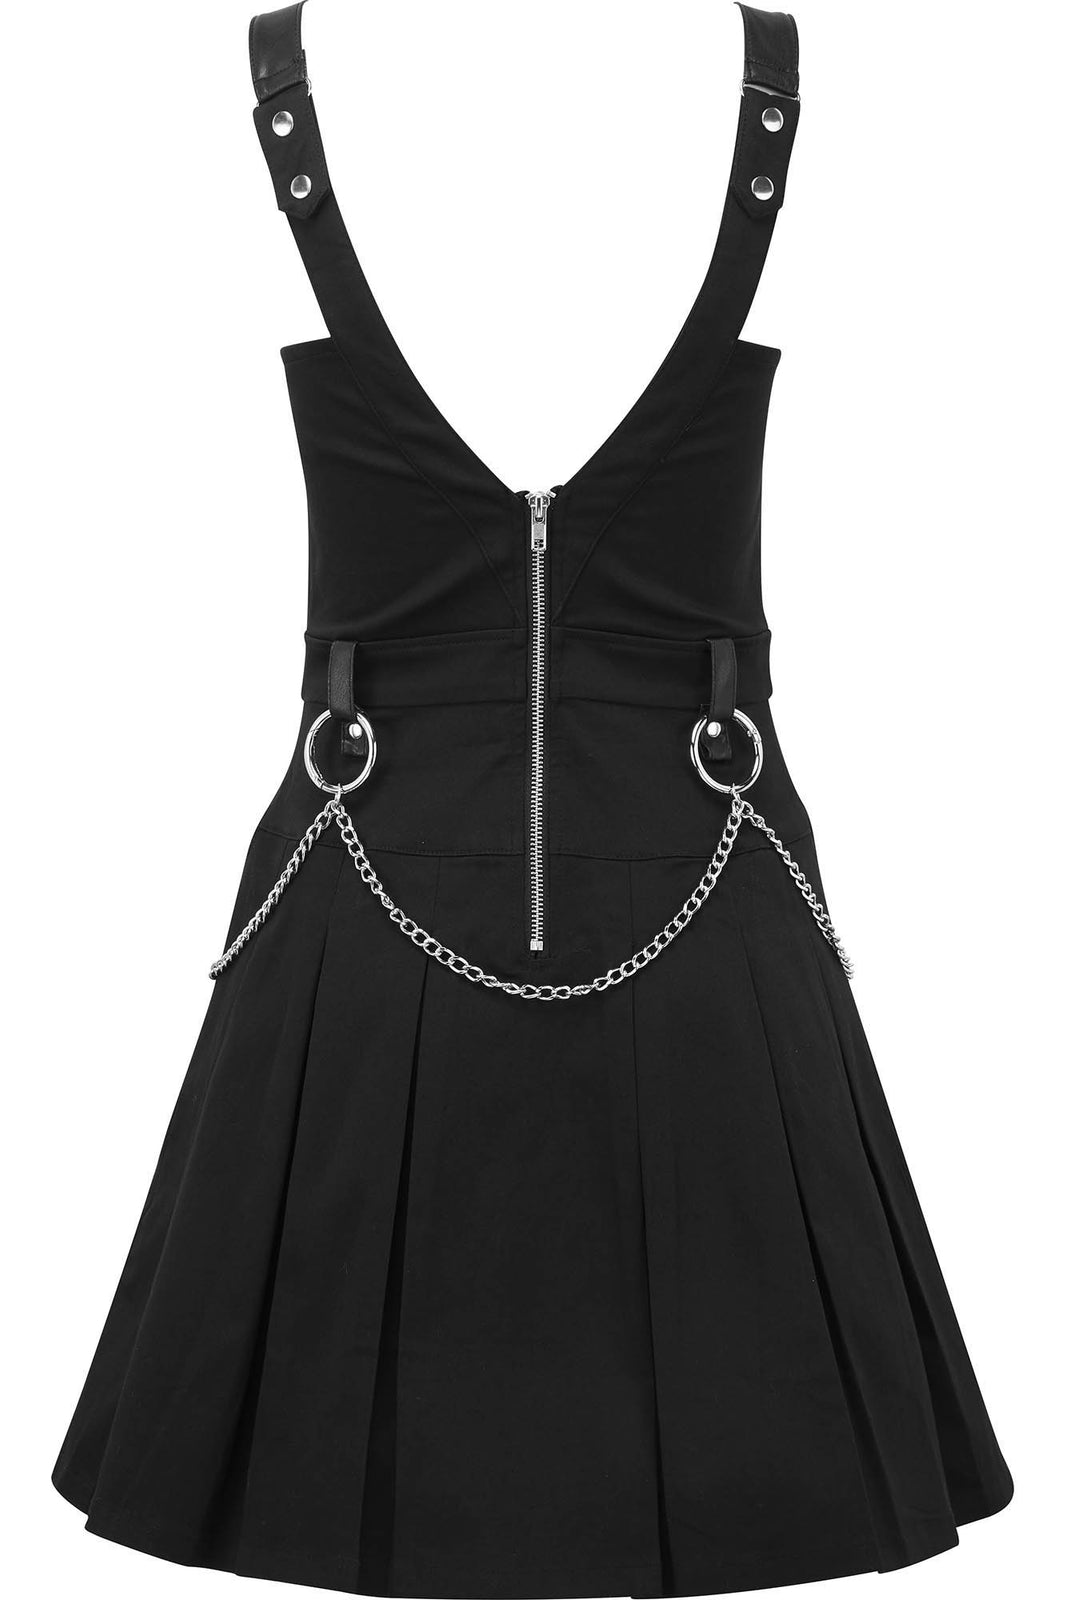 Regan Pinafore Dress [B]